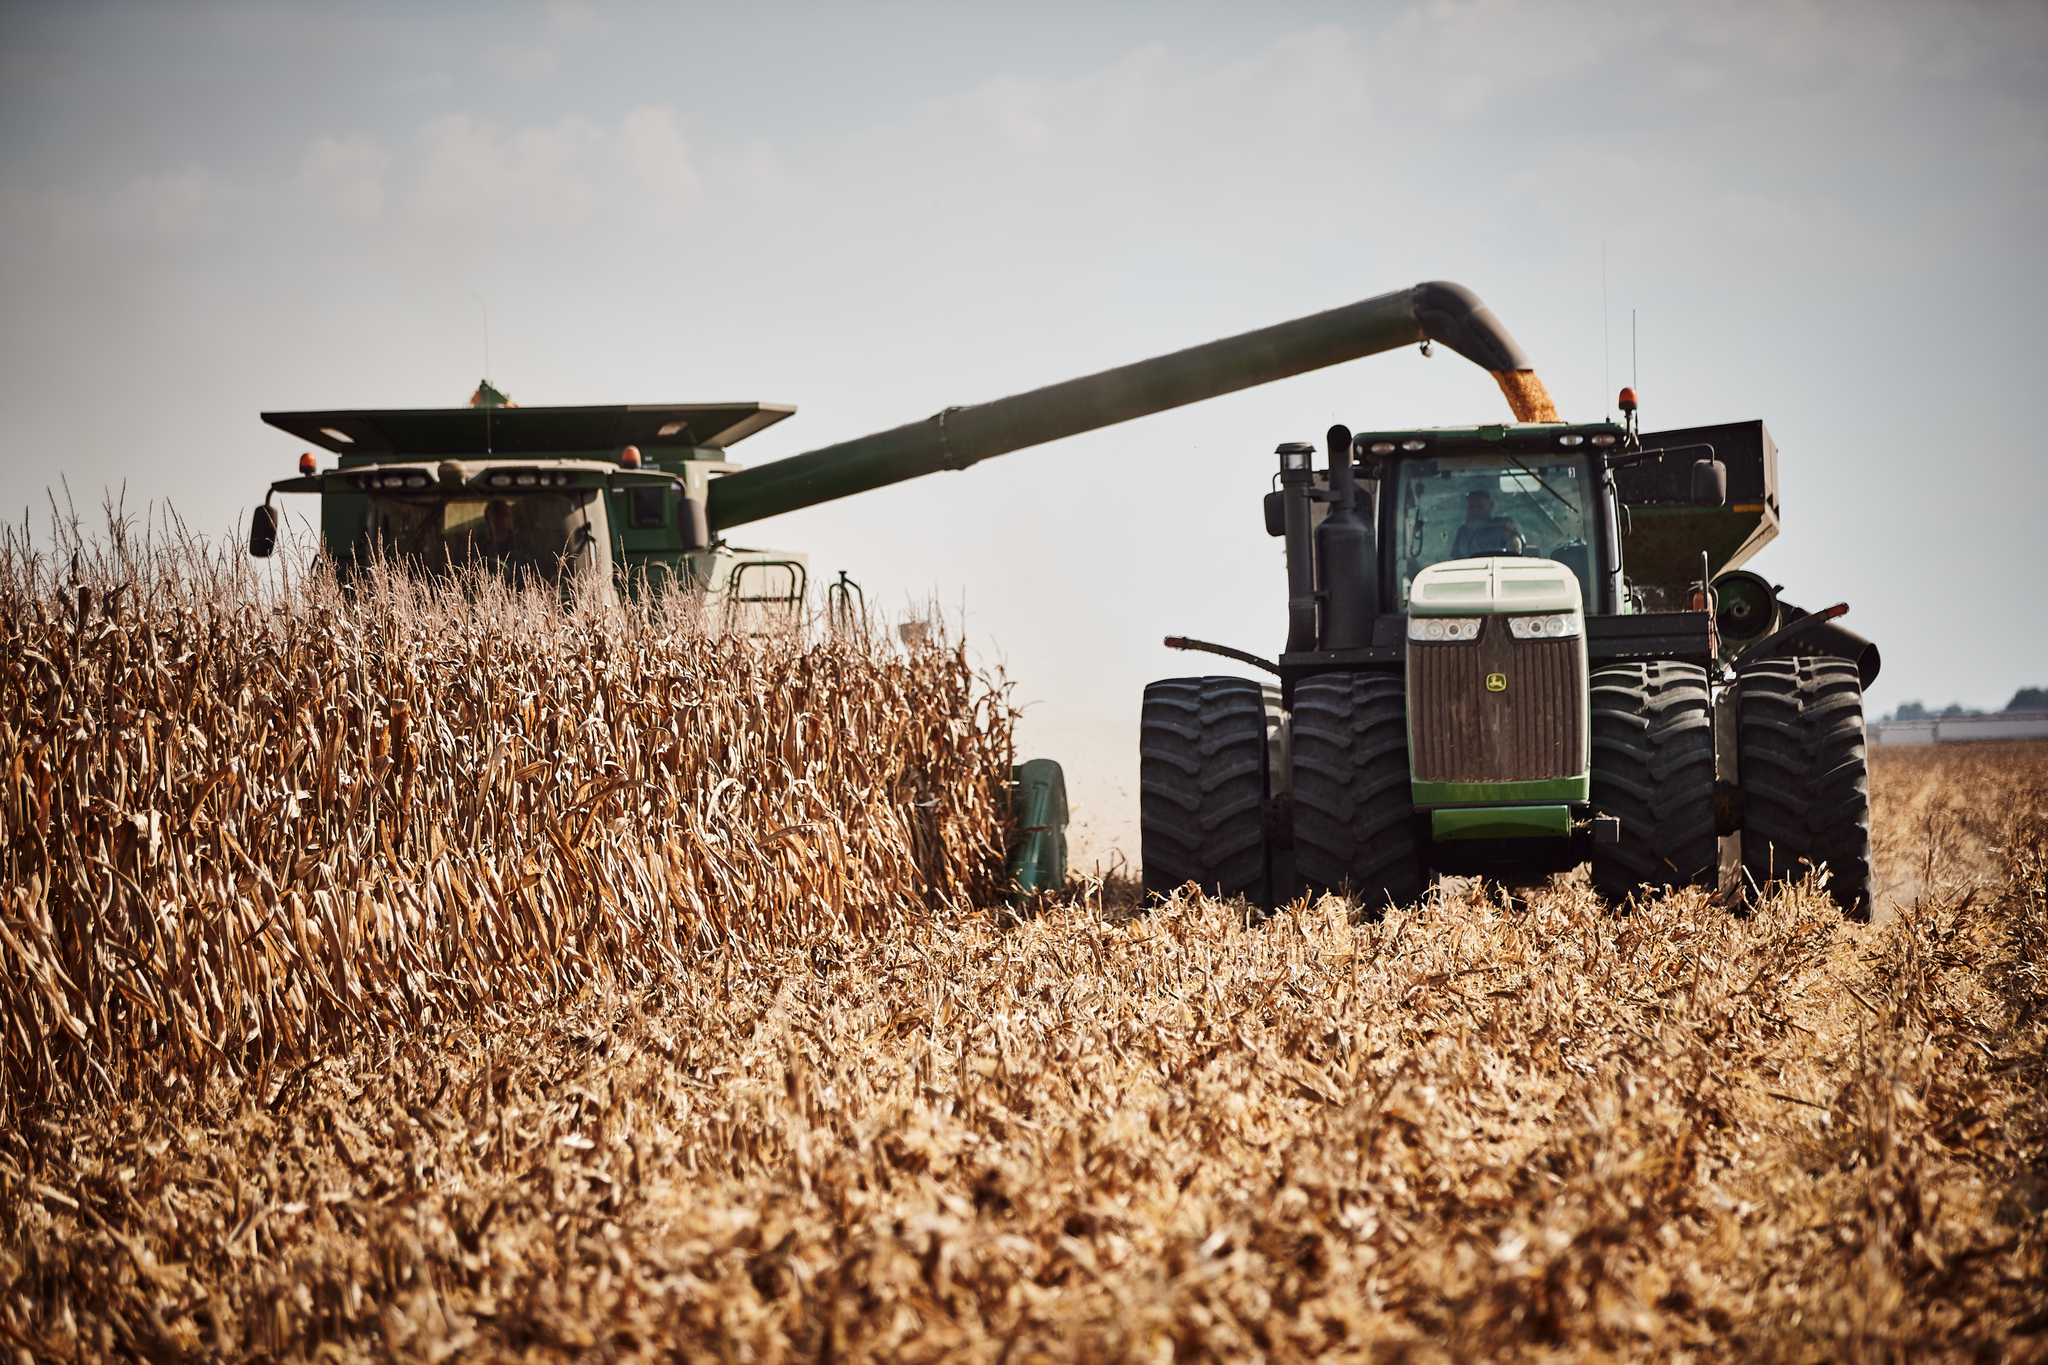 A combine harvester working along tractor pulled trailer to gather crops